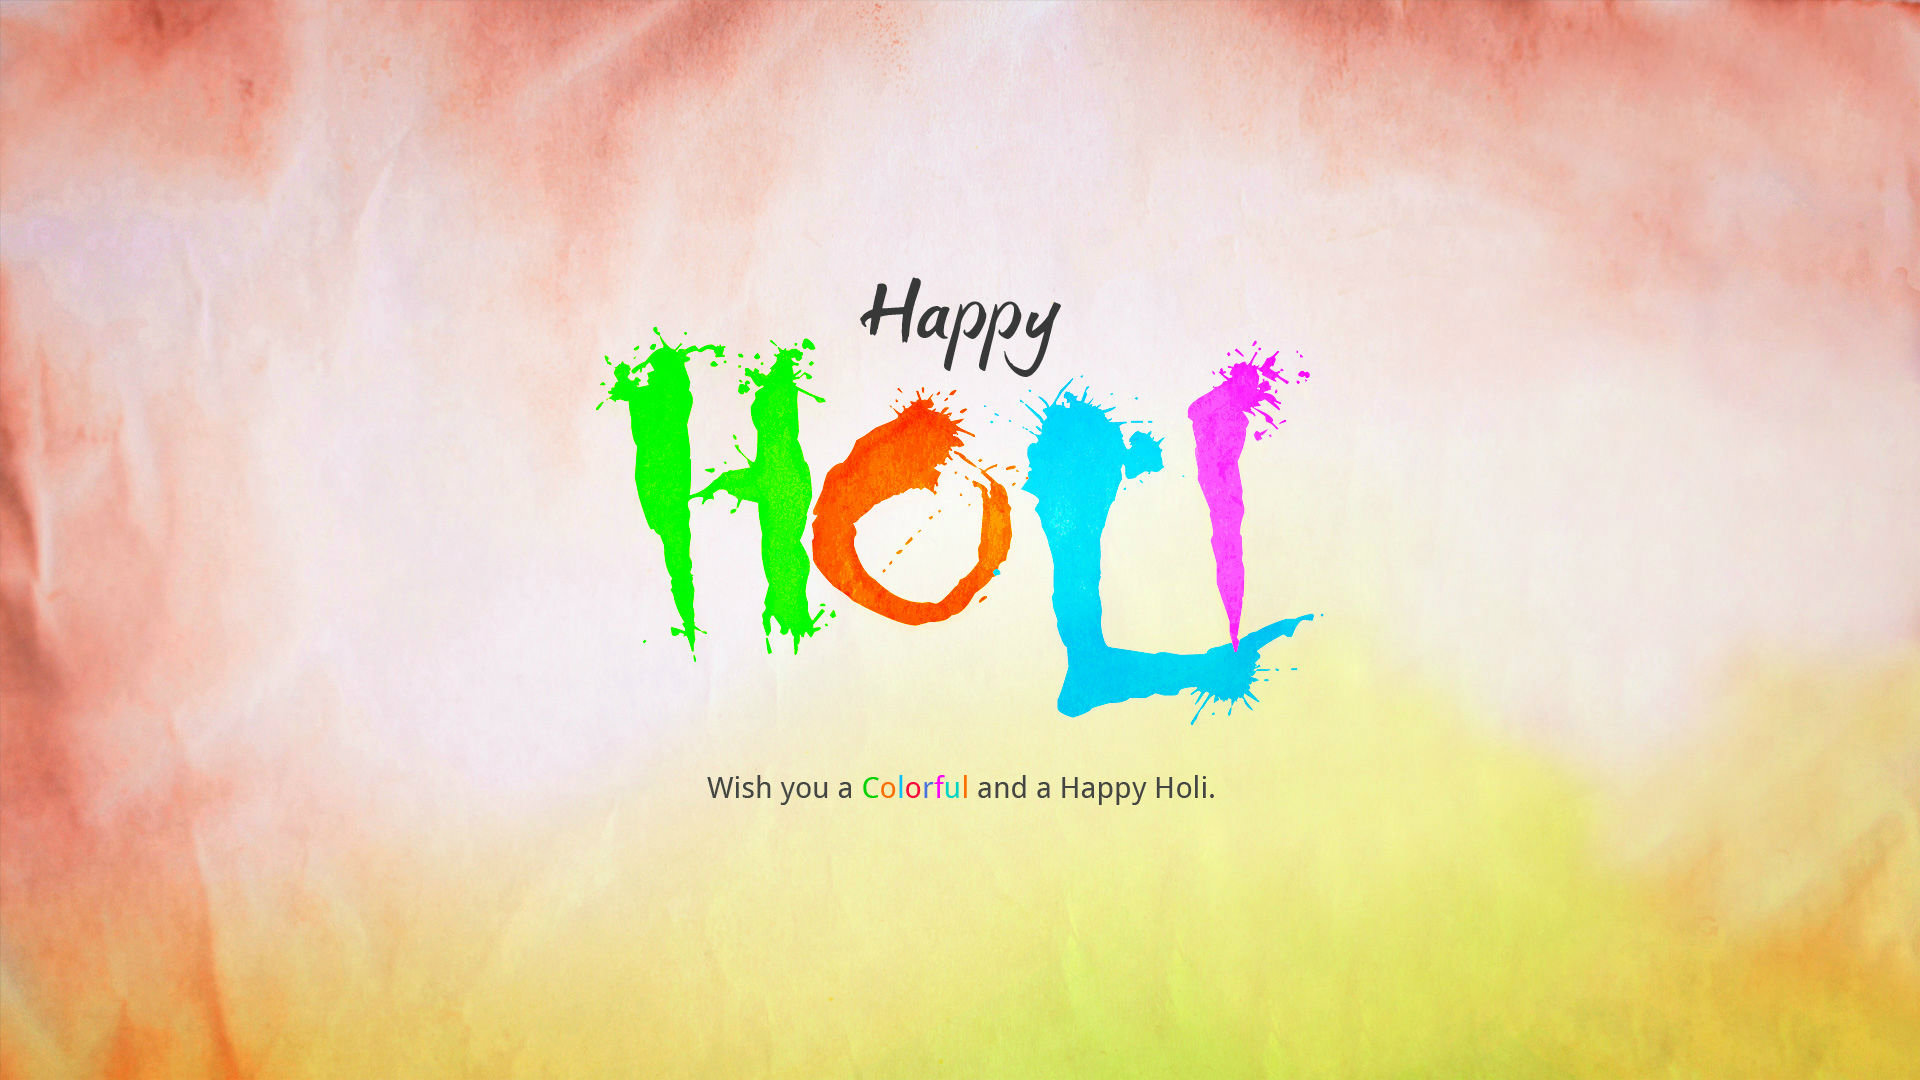 Download 2015 Happy Holi Wallpaper Most HD Wallpapers Pictures 1920x1080